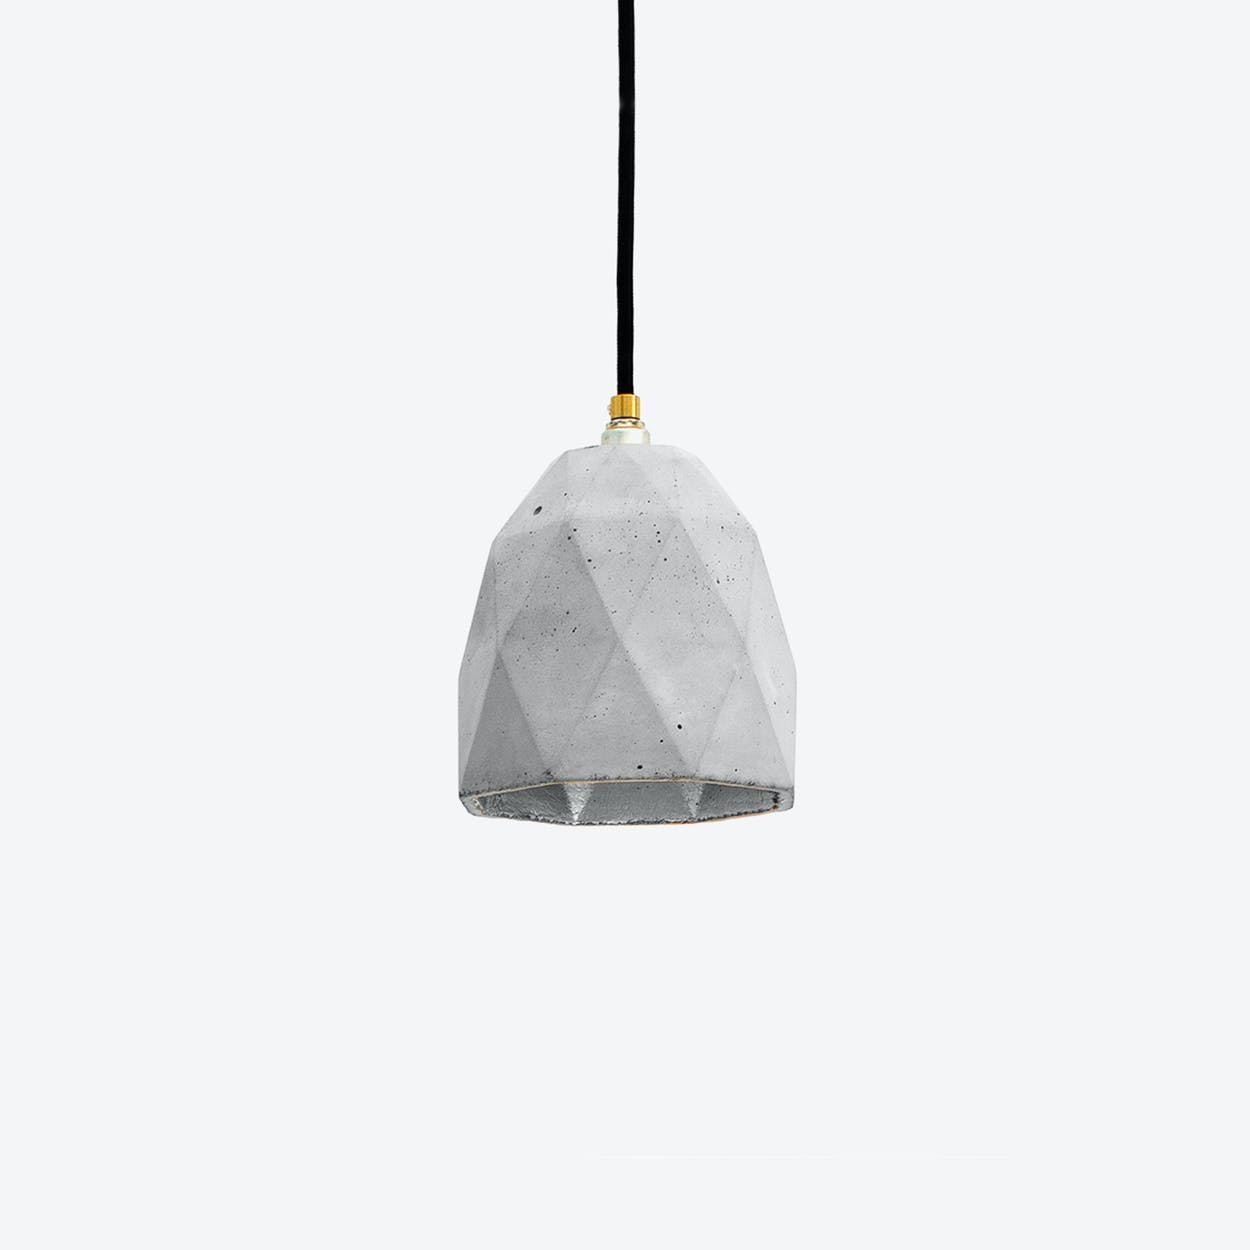 Concrete Pendant Light Triangle T1 in Light Grey and Silver